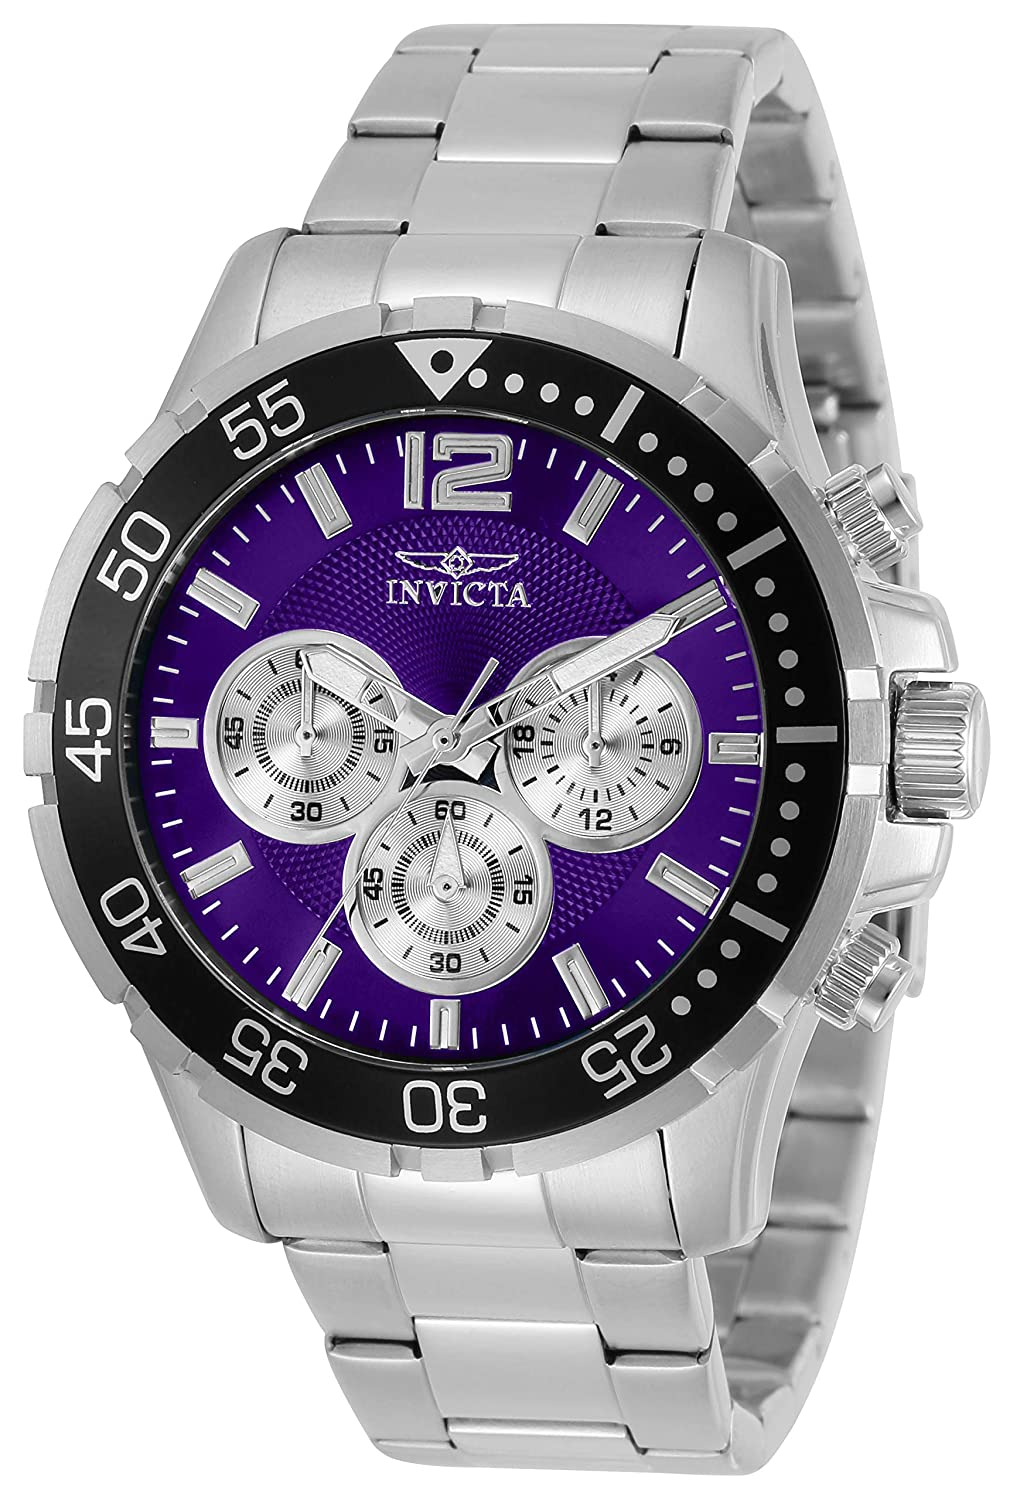 Invicta Men s Specialty Quartz Watch with Stainless Steel Strap, Silver, 22 Model 25755